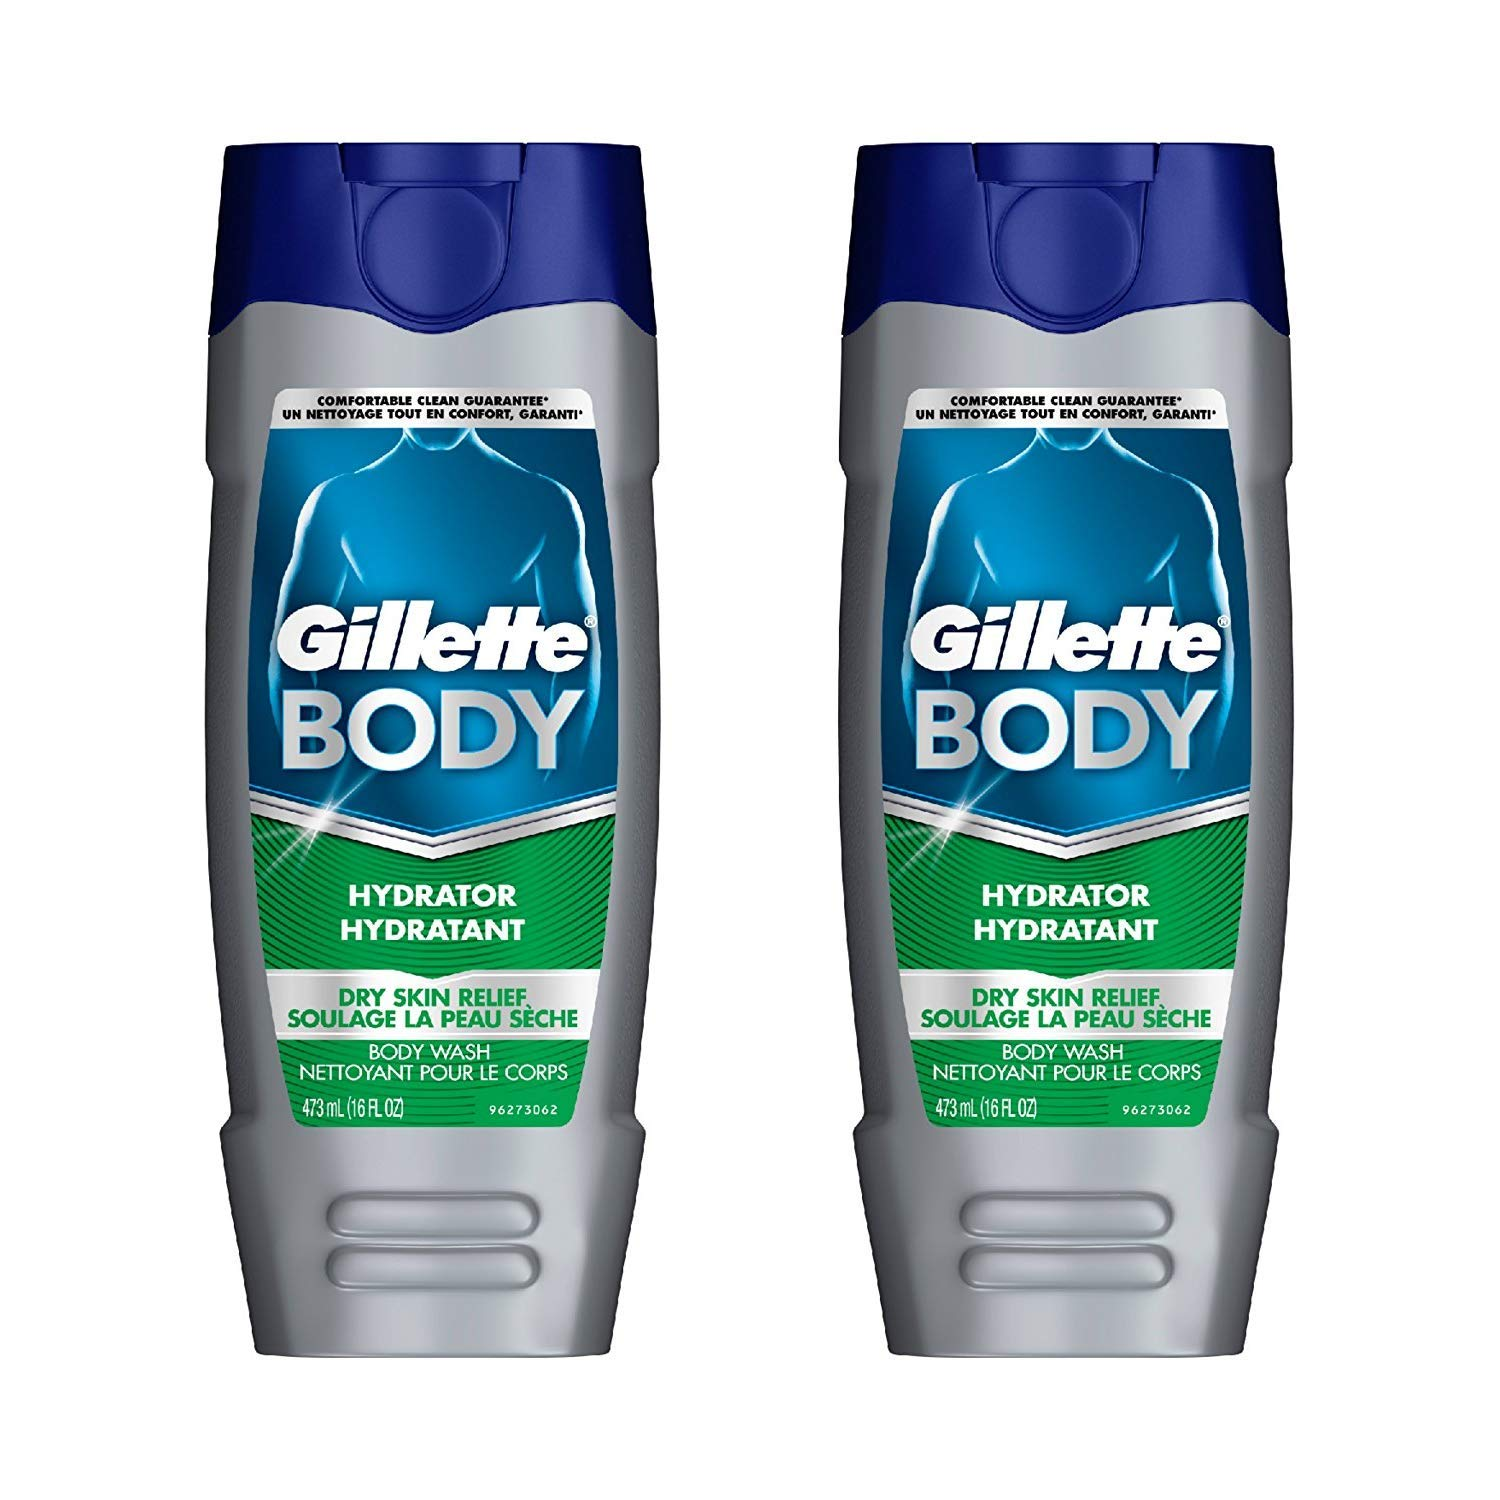 Gillette Body Hydrator Body Wash, Dry Skin Relief, 16 Fluid Ounce Pack of 6